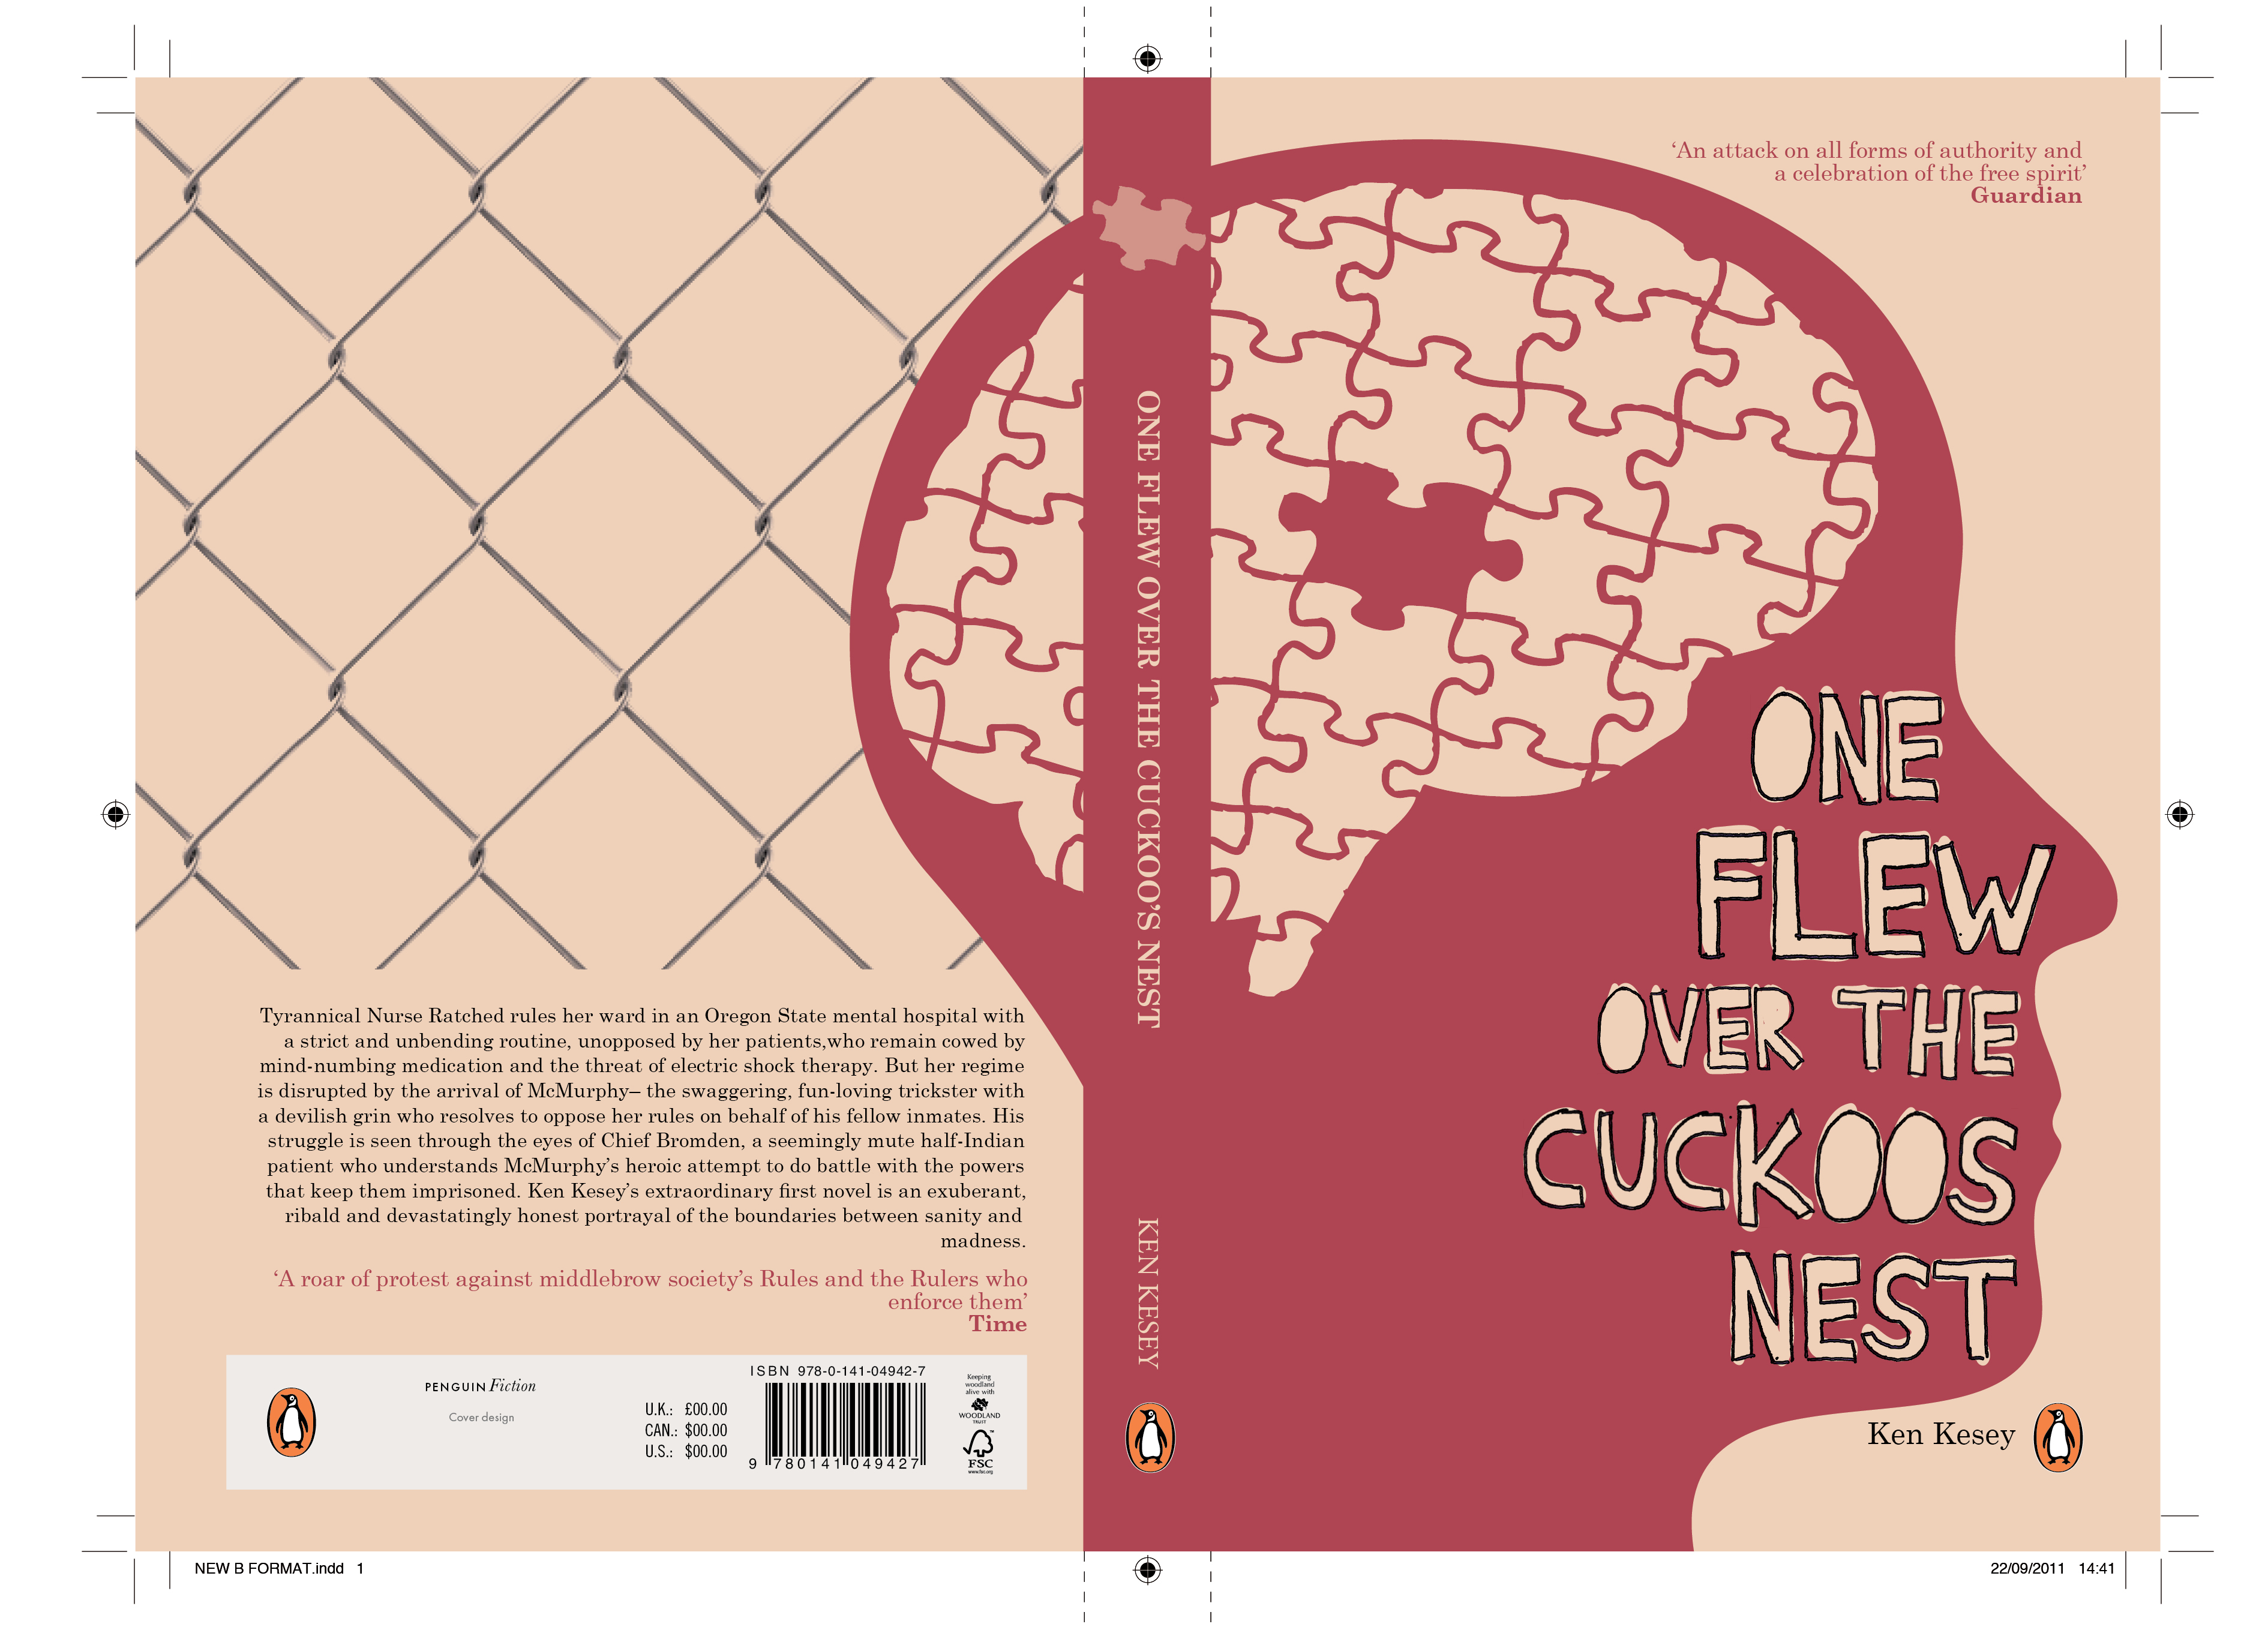 007 636199346646320168772420585 One Flew Over The Cuckoo Nest Book Cover3 Cuckoos Essay Wonderful Cuckoo's Prompts Writing Analysis Questions Full